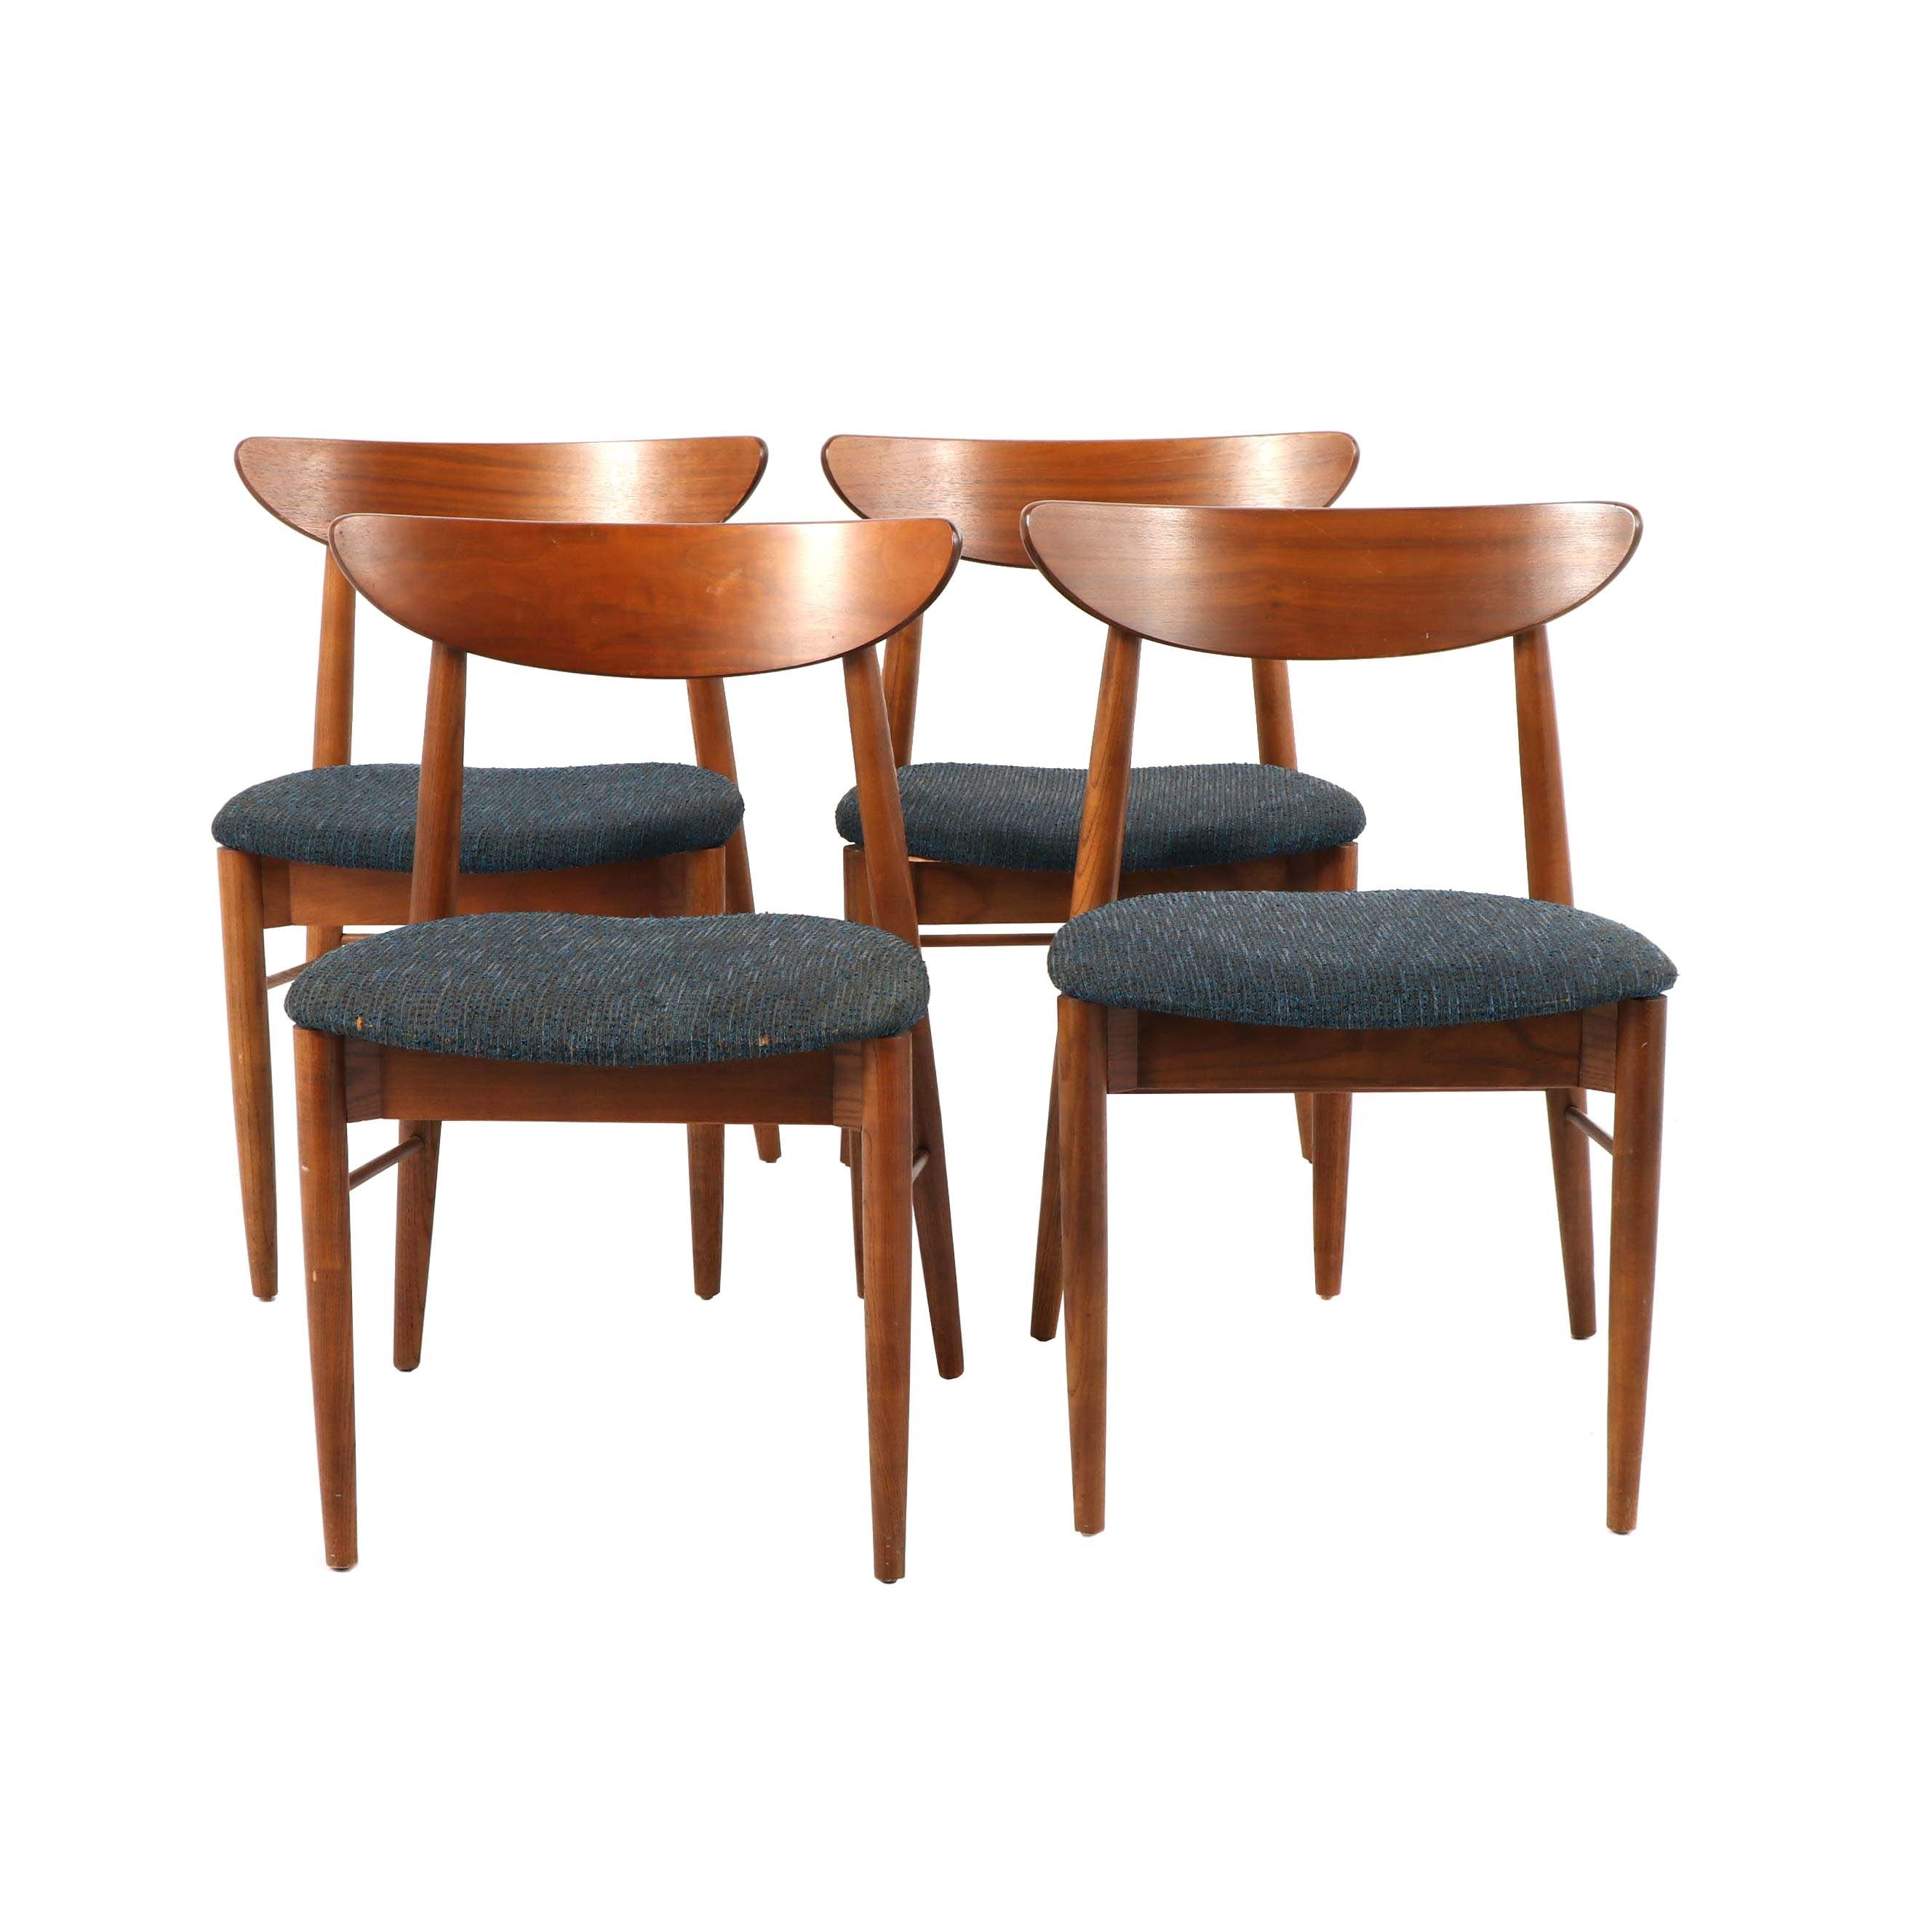 Mid Century Modern Dining Chairs, Mid 20th Century